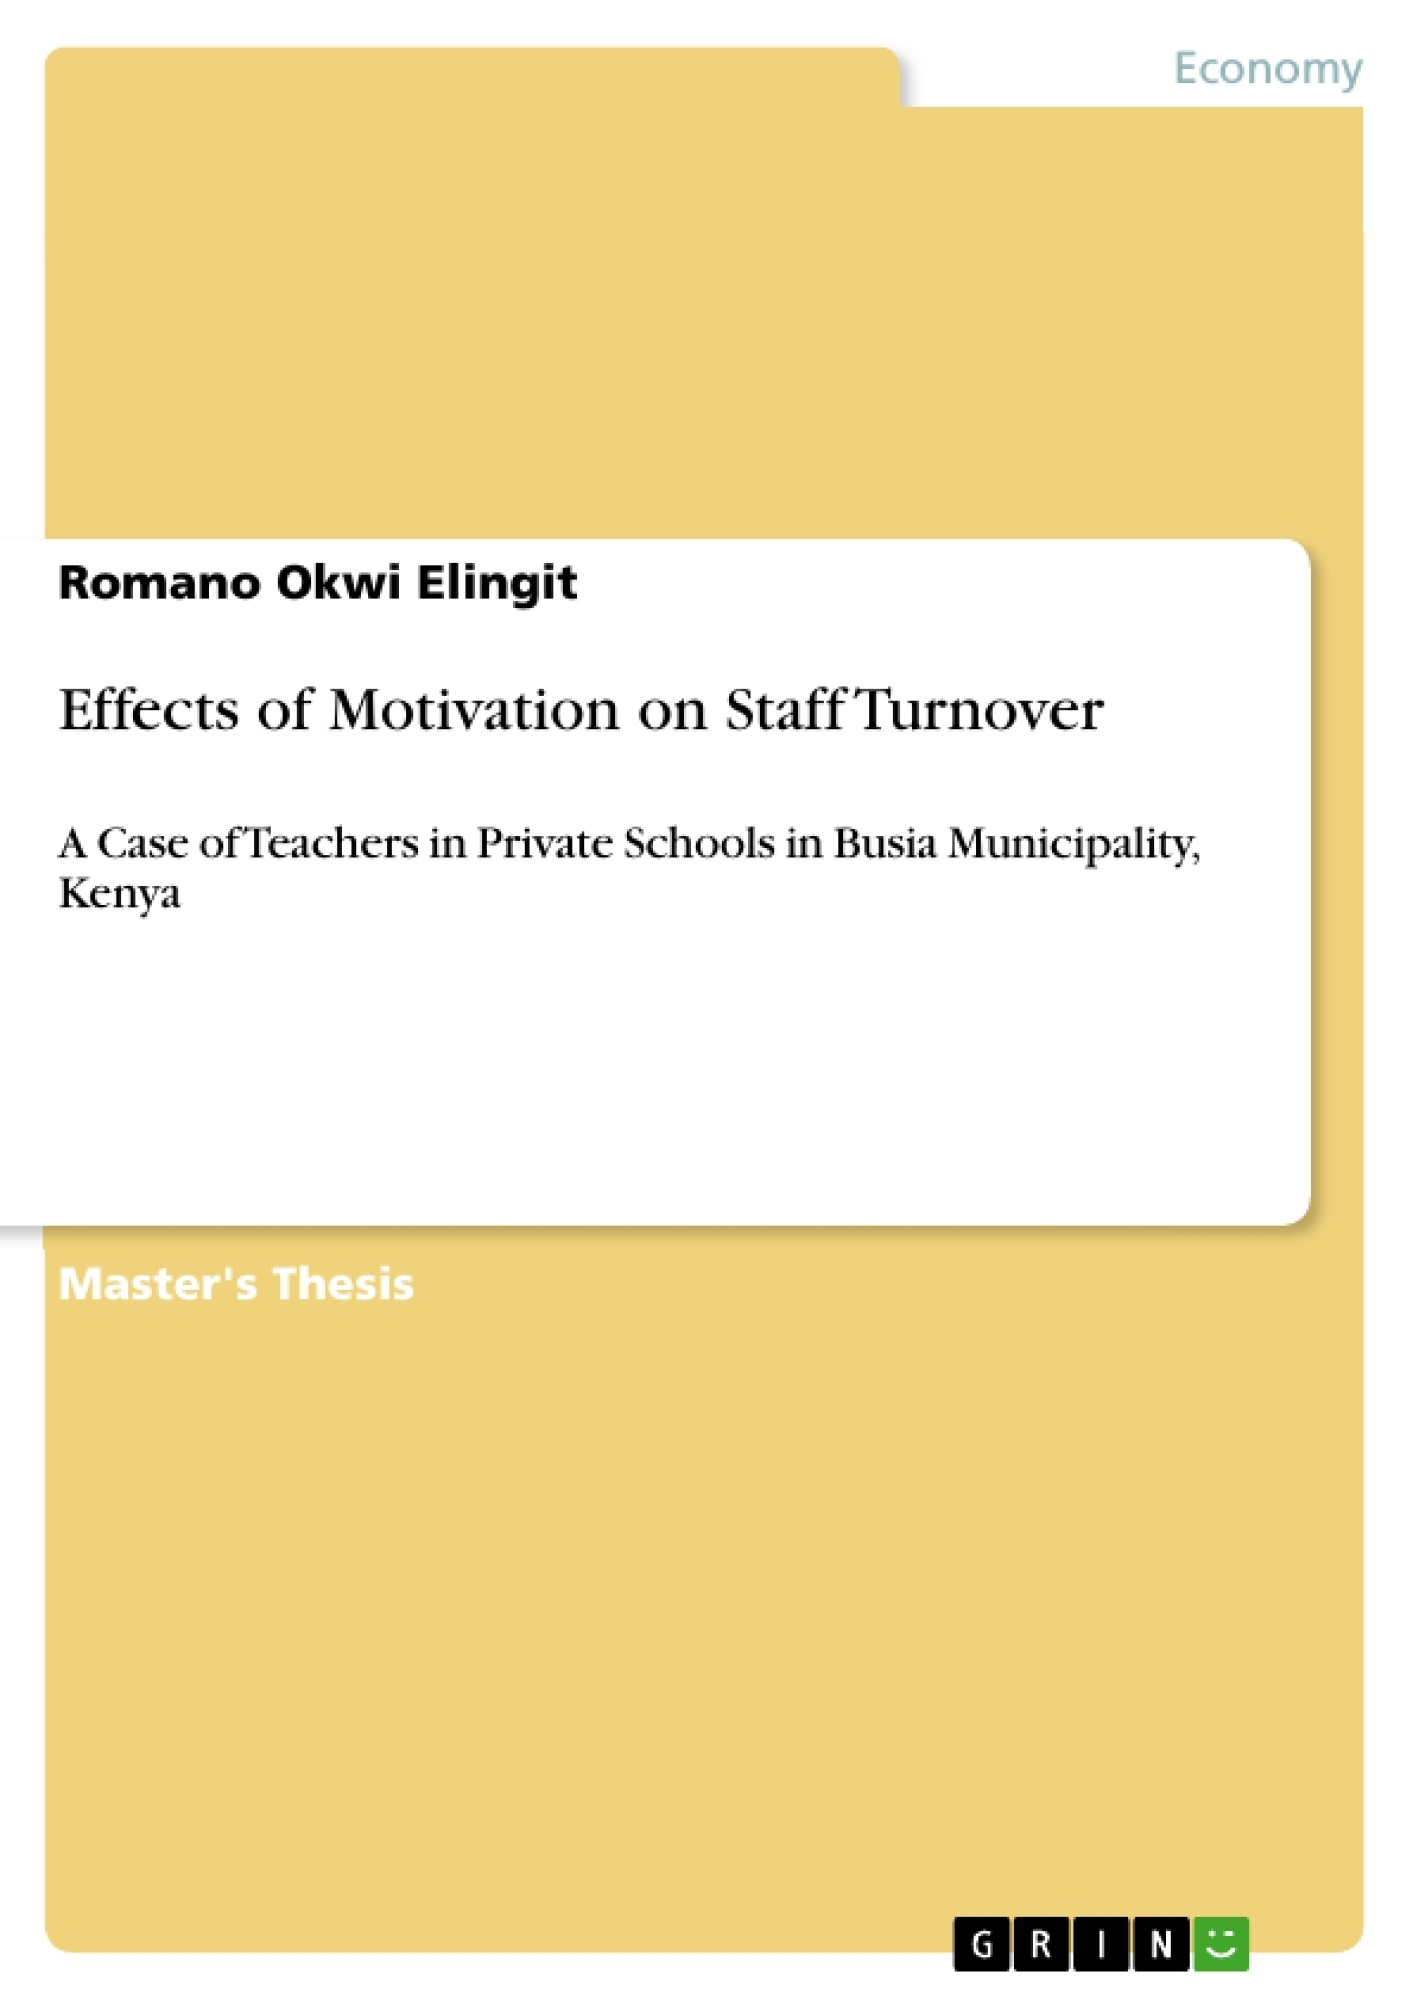 dissertation motivation section effects of motivation on staff turnover publish your master s